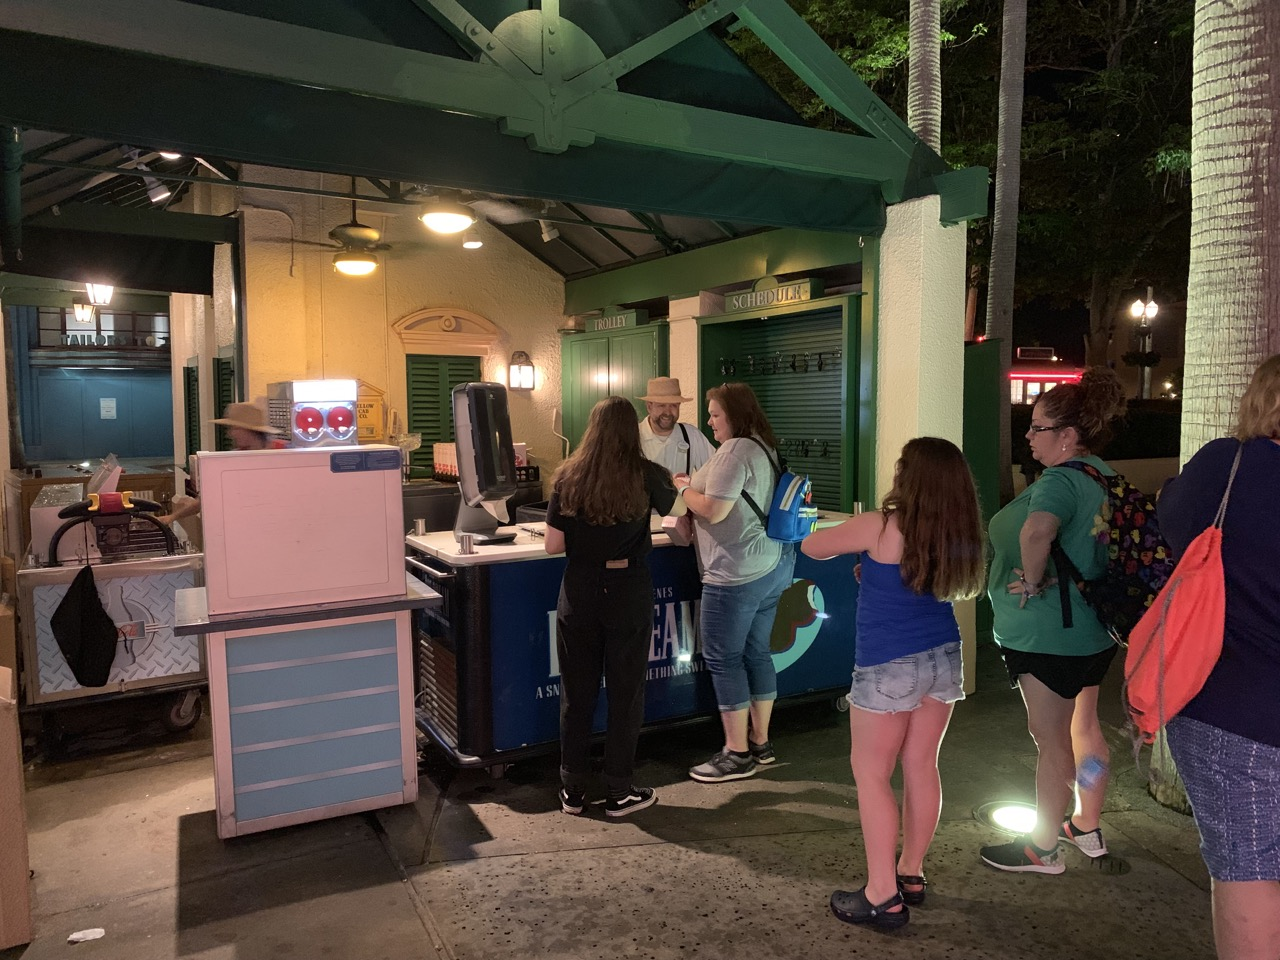 disney world hollywood studios after hours review 15 snacks.jpeg